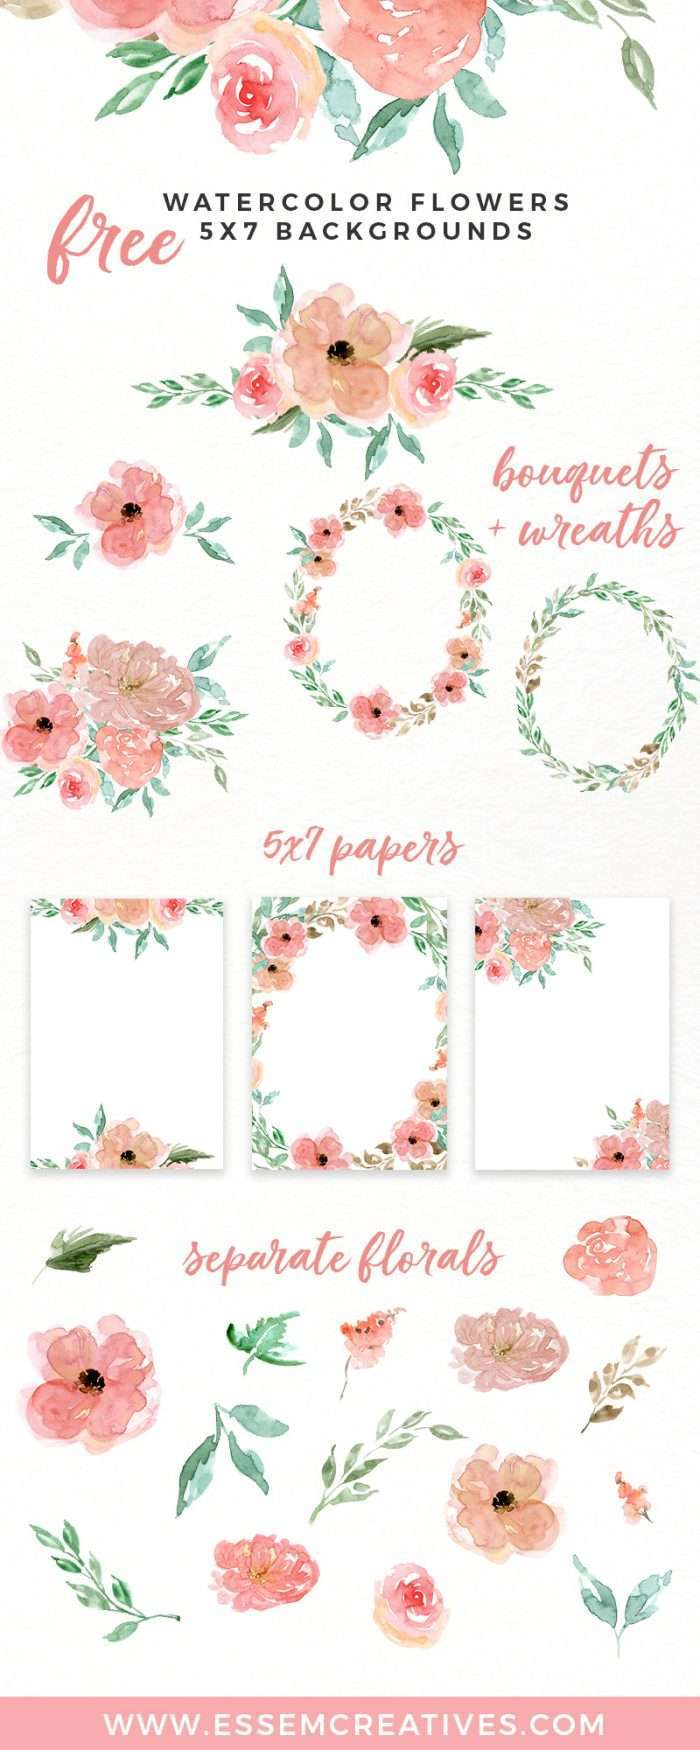 Free Watercolor Flowers Clipart, Floral Wreaths, 5x7 Borders Backgrounds | Use these free digital resources for your next DIY art & crafts project | Use to make birthday party invitations, wedding invites, printable wall art & home decor, logo for your blog or etsy shop, a banner for your website & more. Click to get it>>